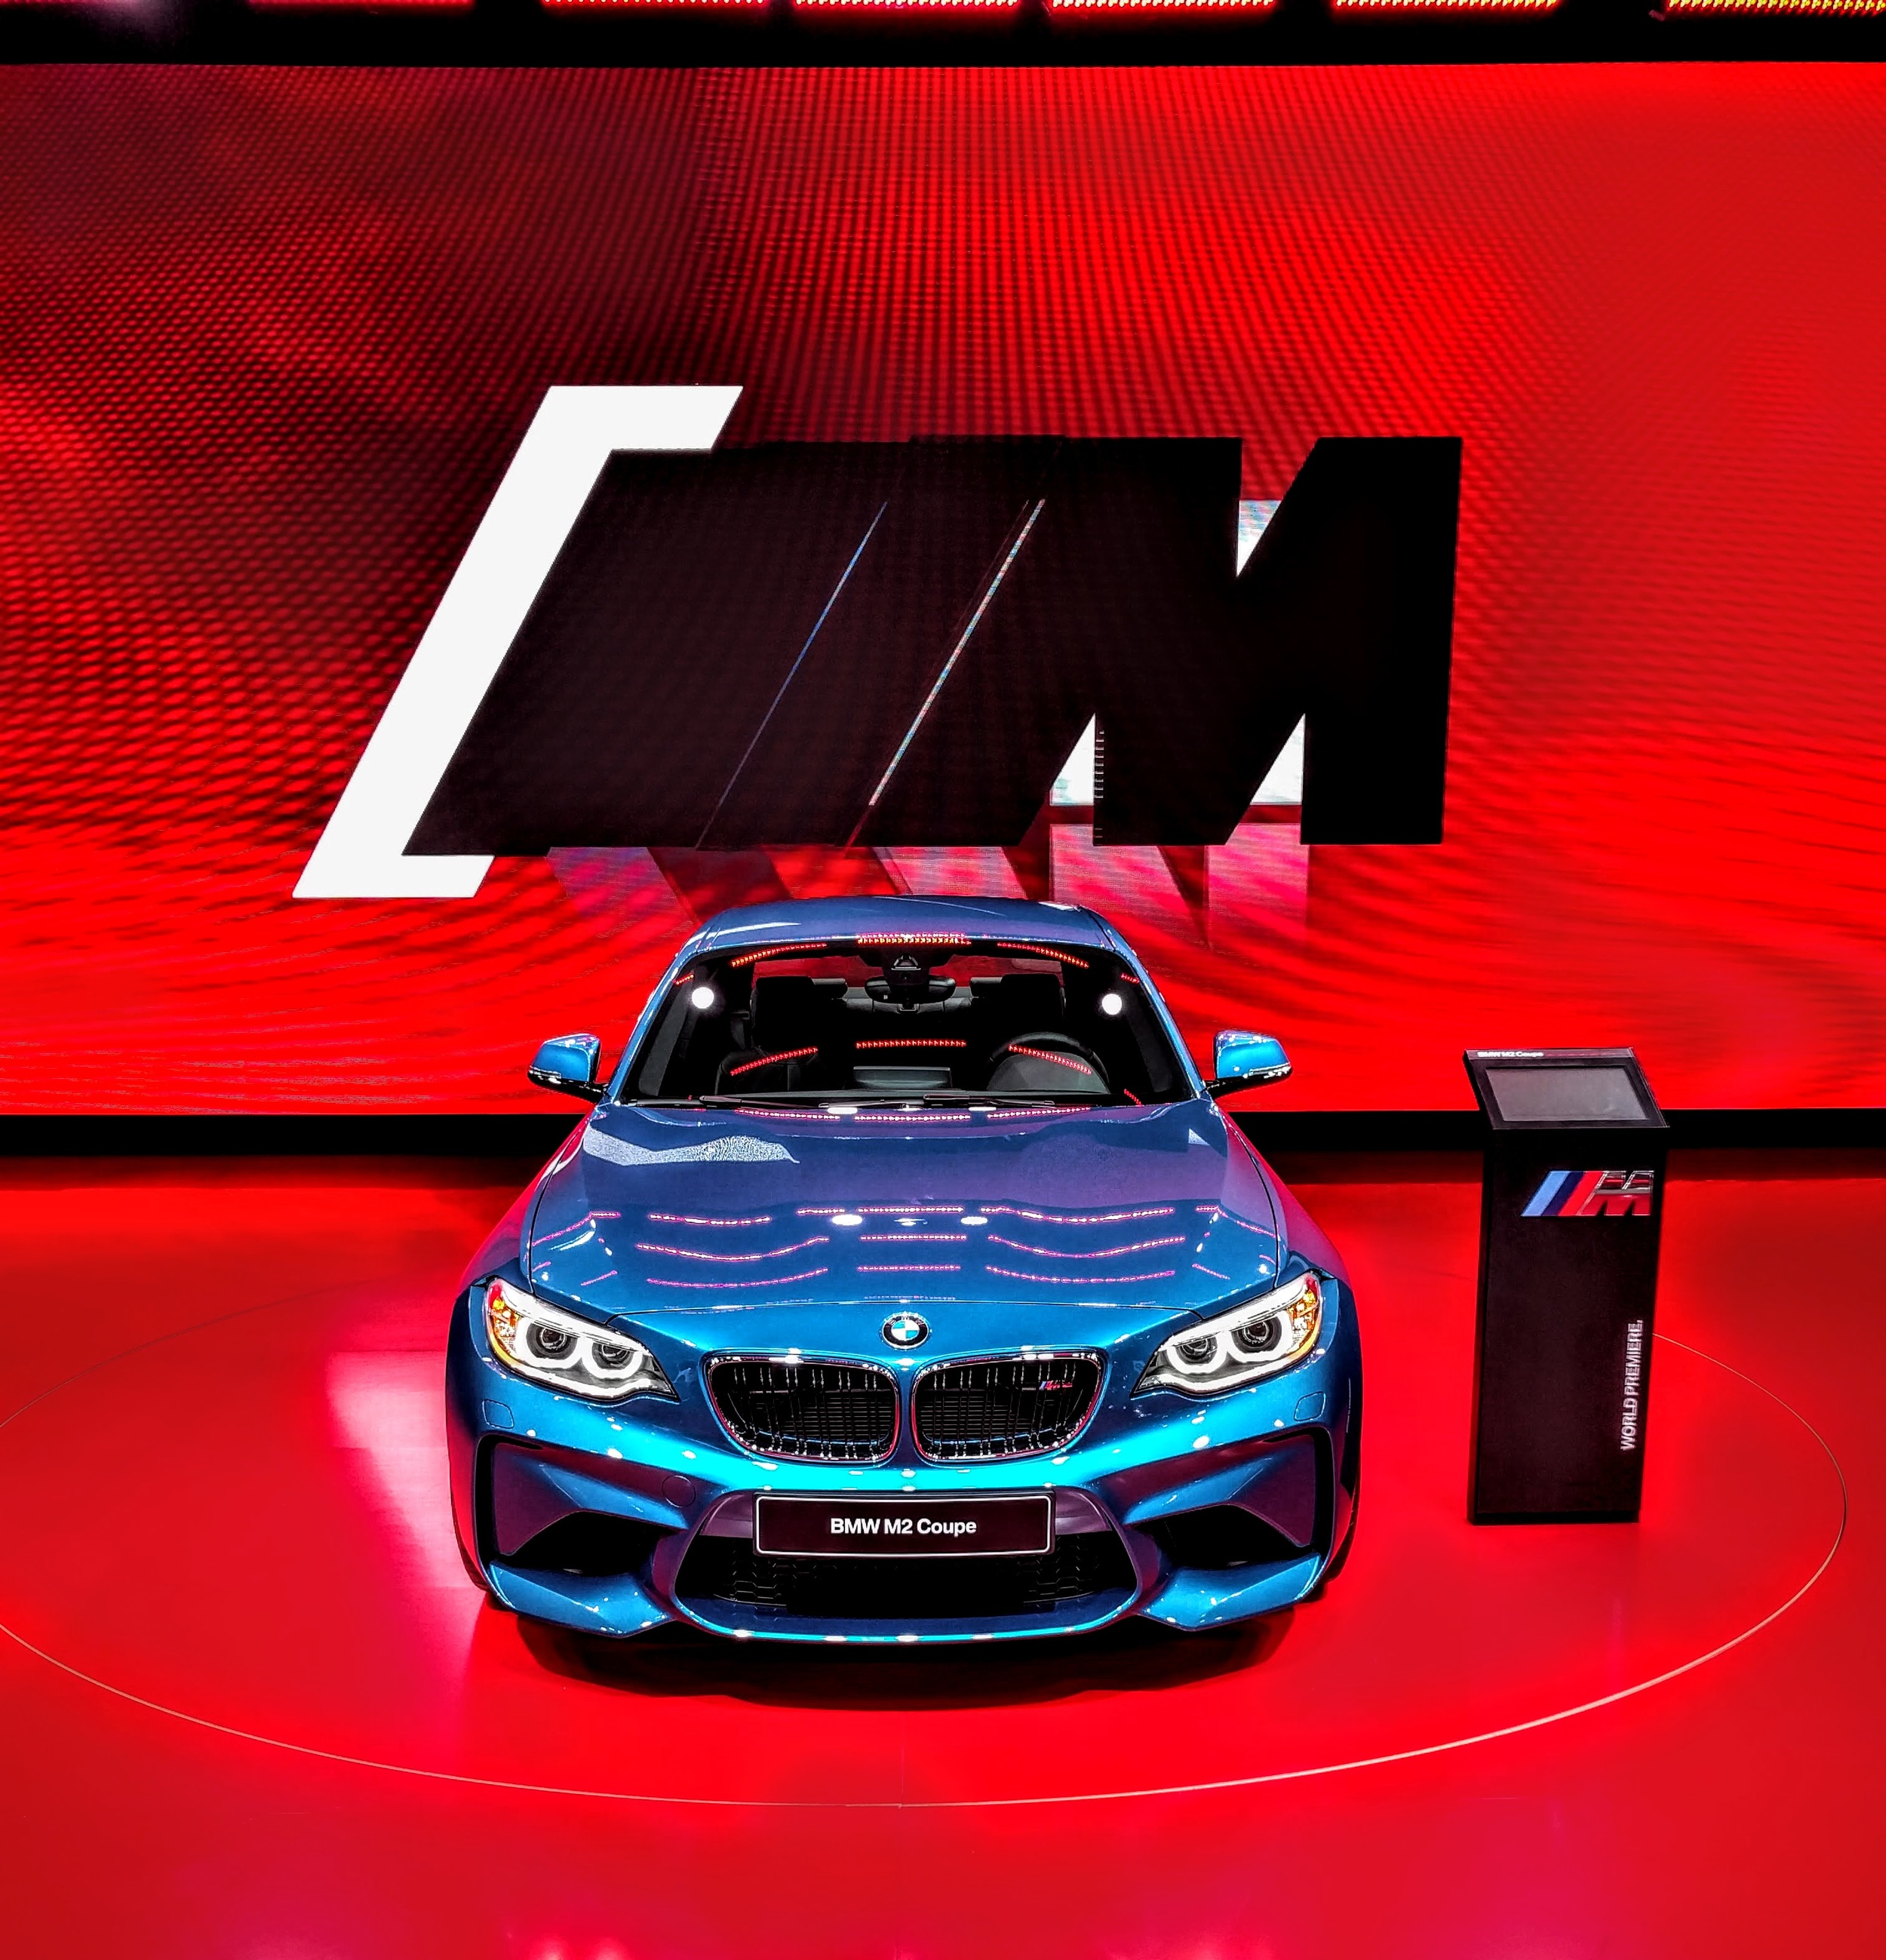 2016 BMW M2  Engine:  3.0L I-6 Turbo Producing 365 HP & 369 lb-ft  Price: $ 50K